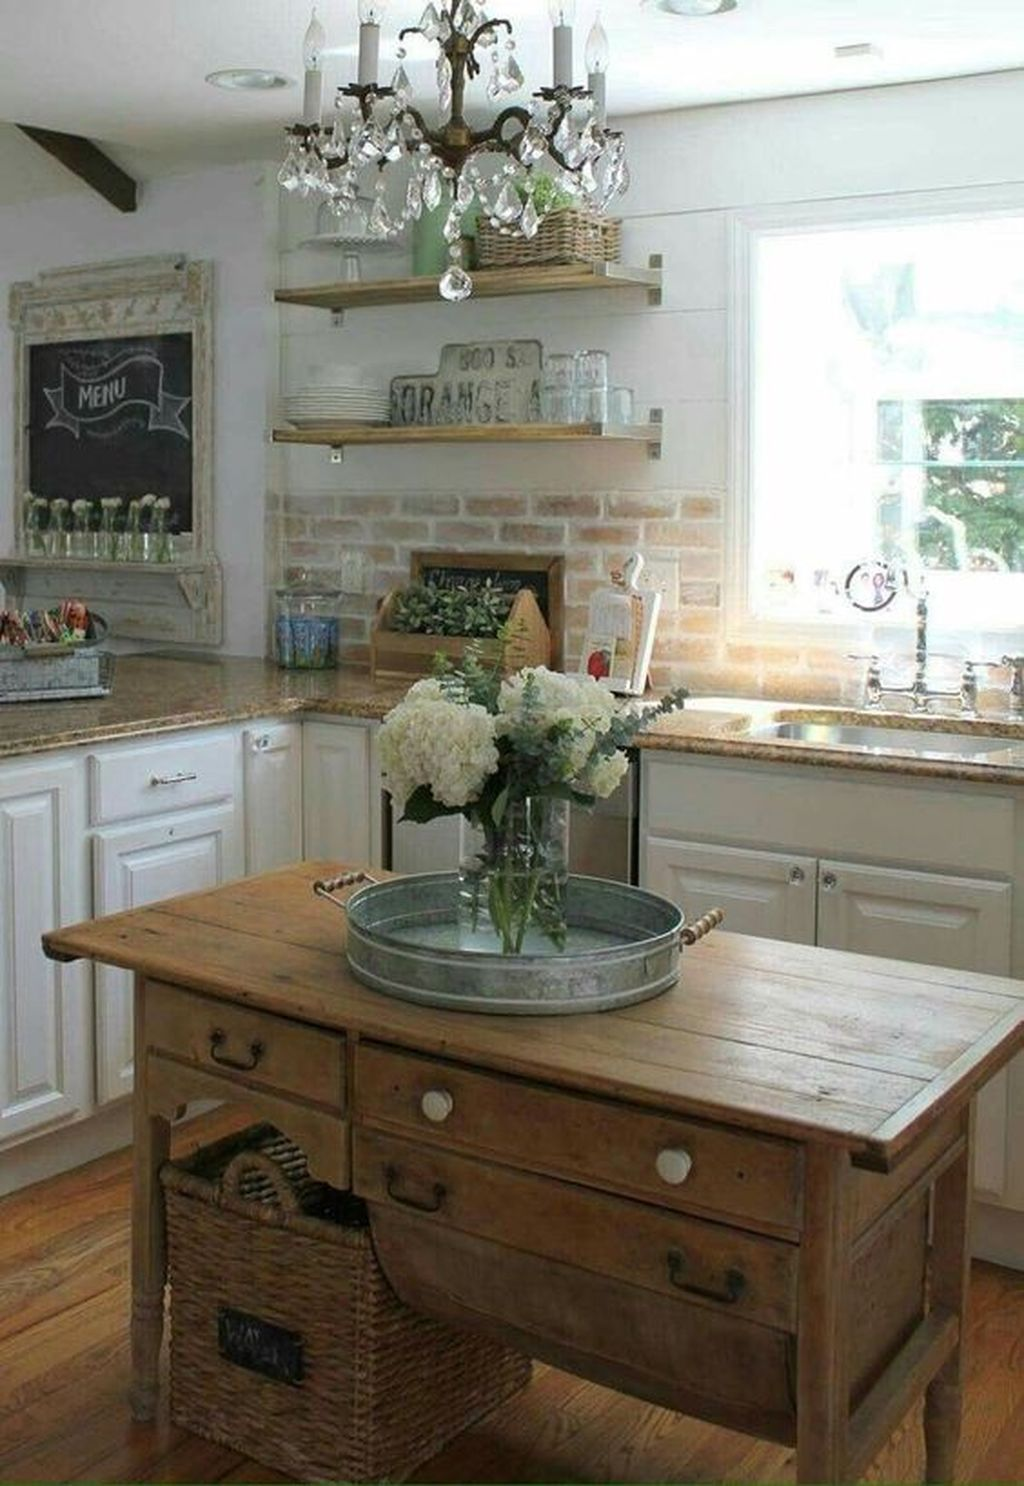 46 Inspiring Rustic Country Kitchen Ideas To Renew Your Ordinary Kitchen images